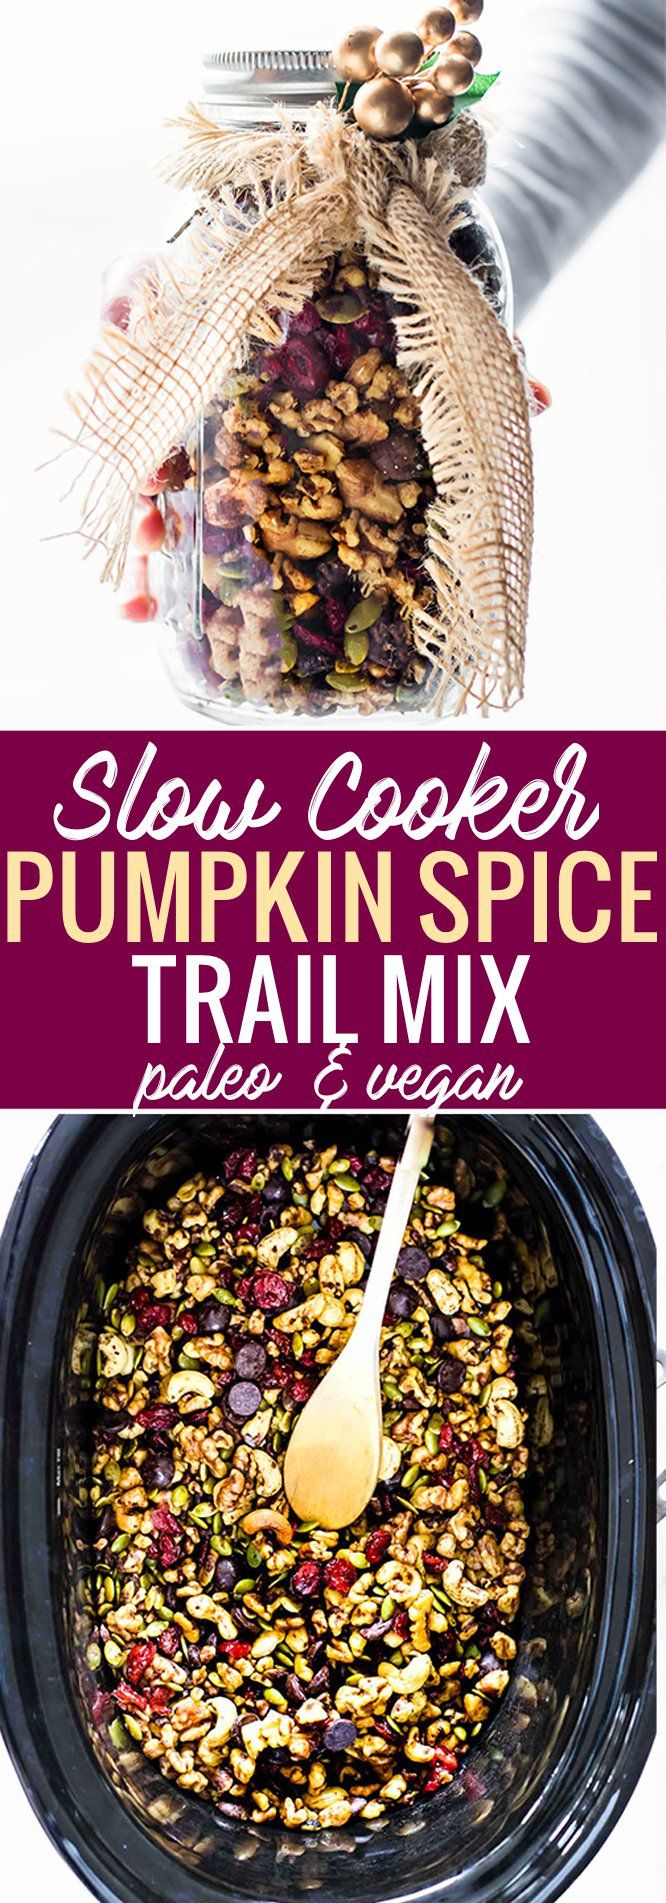 This pumpkin spice trail mix is not only easy to make in the slow cooker, but paleo and vegan friendly too! Dark chocolate, cocoa nibs, cranberries, Walnuts, pumpkin spice, and more! Great as a Holiday gift or for healthy snacking. Smells amazing, tastes amazing!